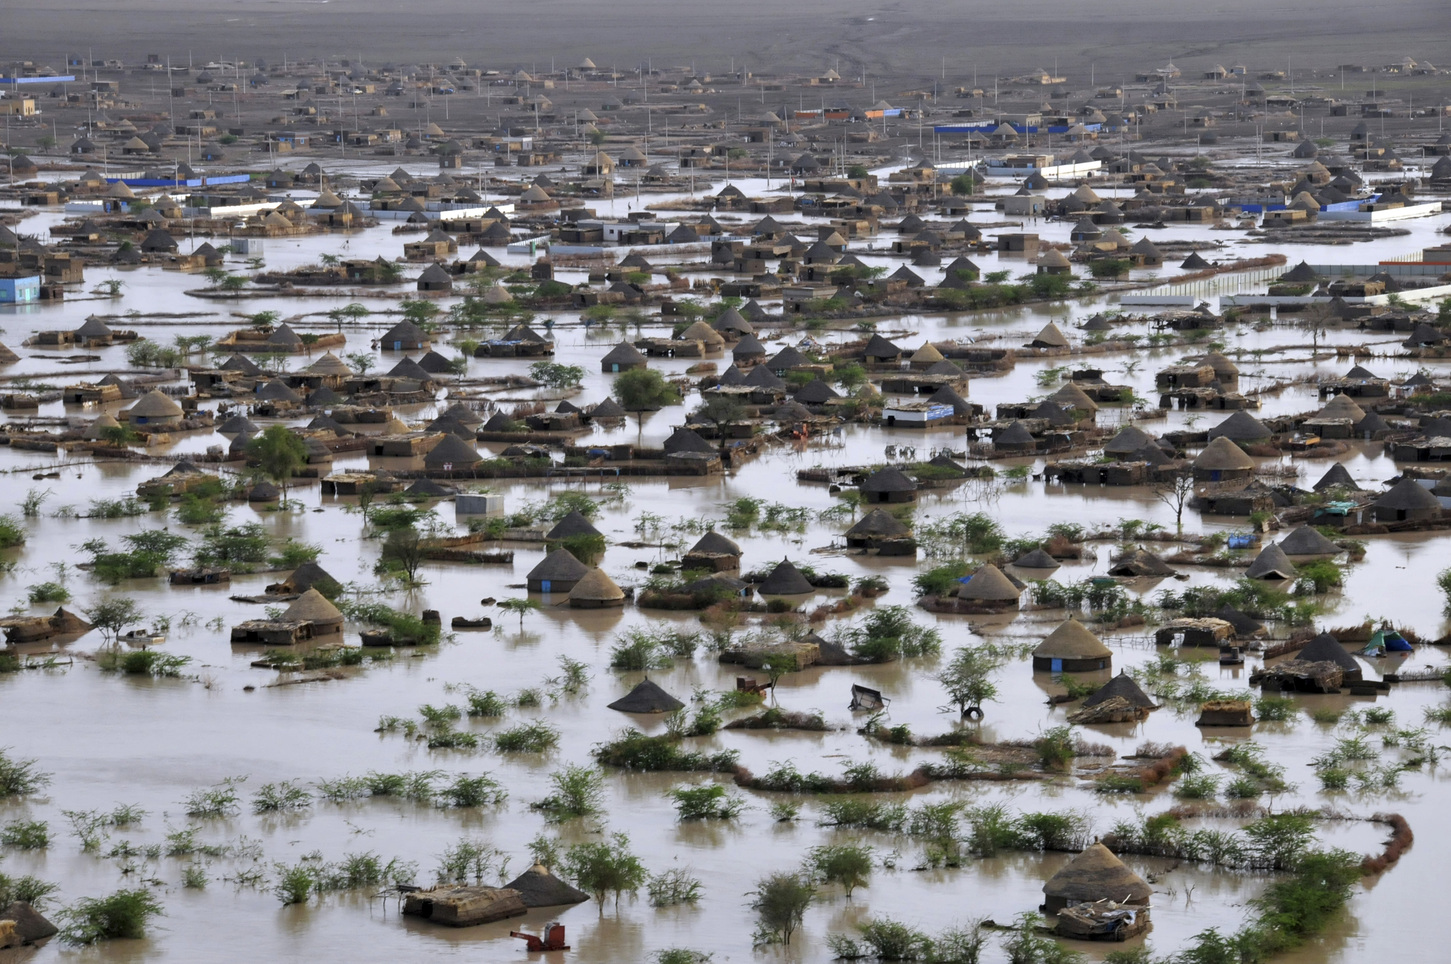 General view of the Gash River flooding in Kassala, Eastern Sudan